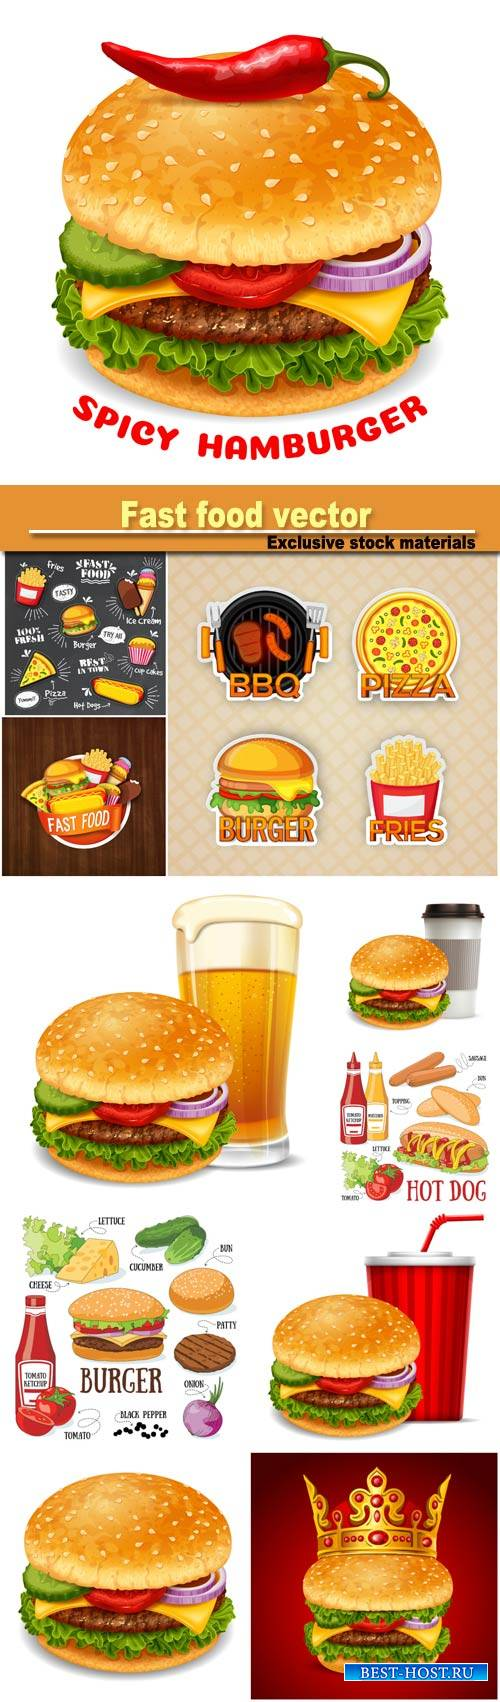 Burger and its ingredients, fast food vector illustration